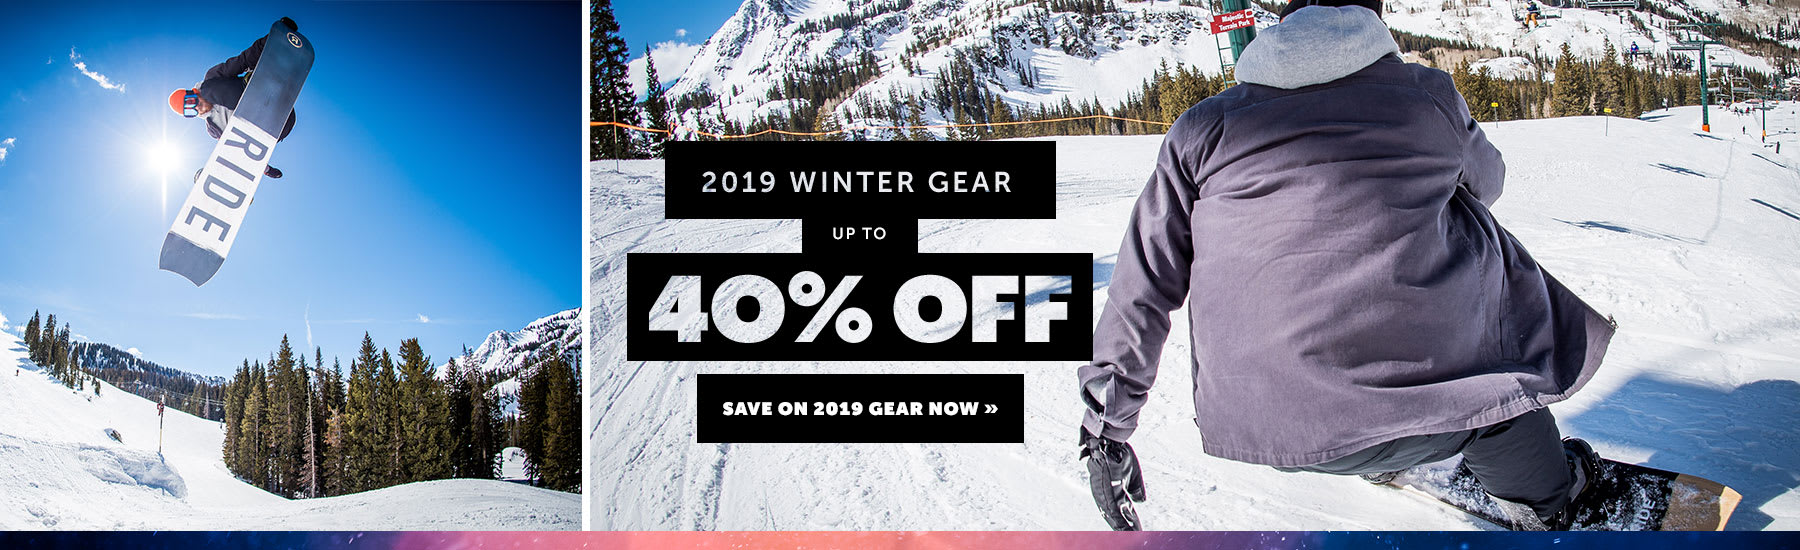 2019 Winter Gear Sale